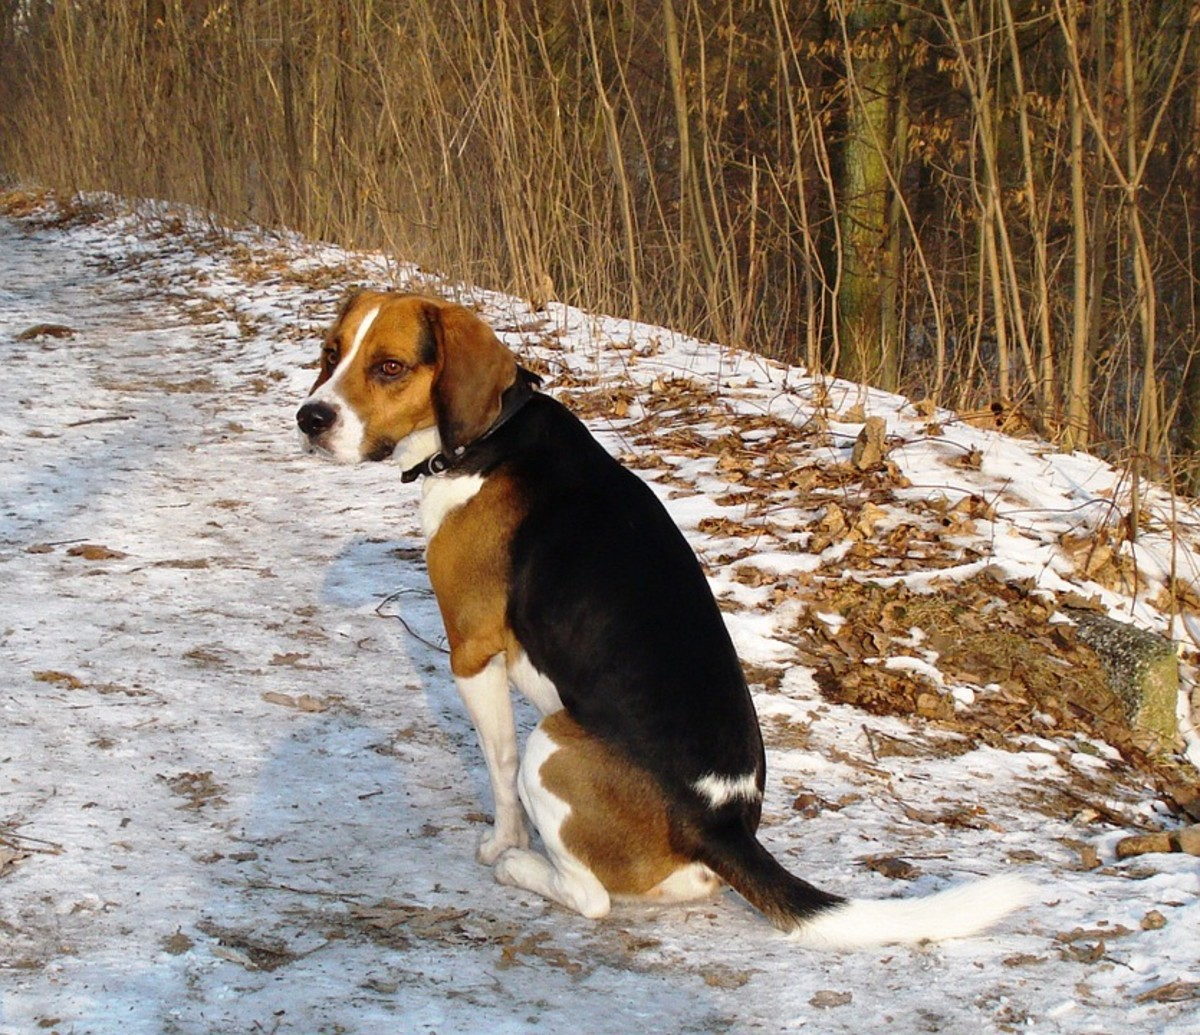 Could a pet dog survive outside in the wild?